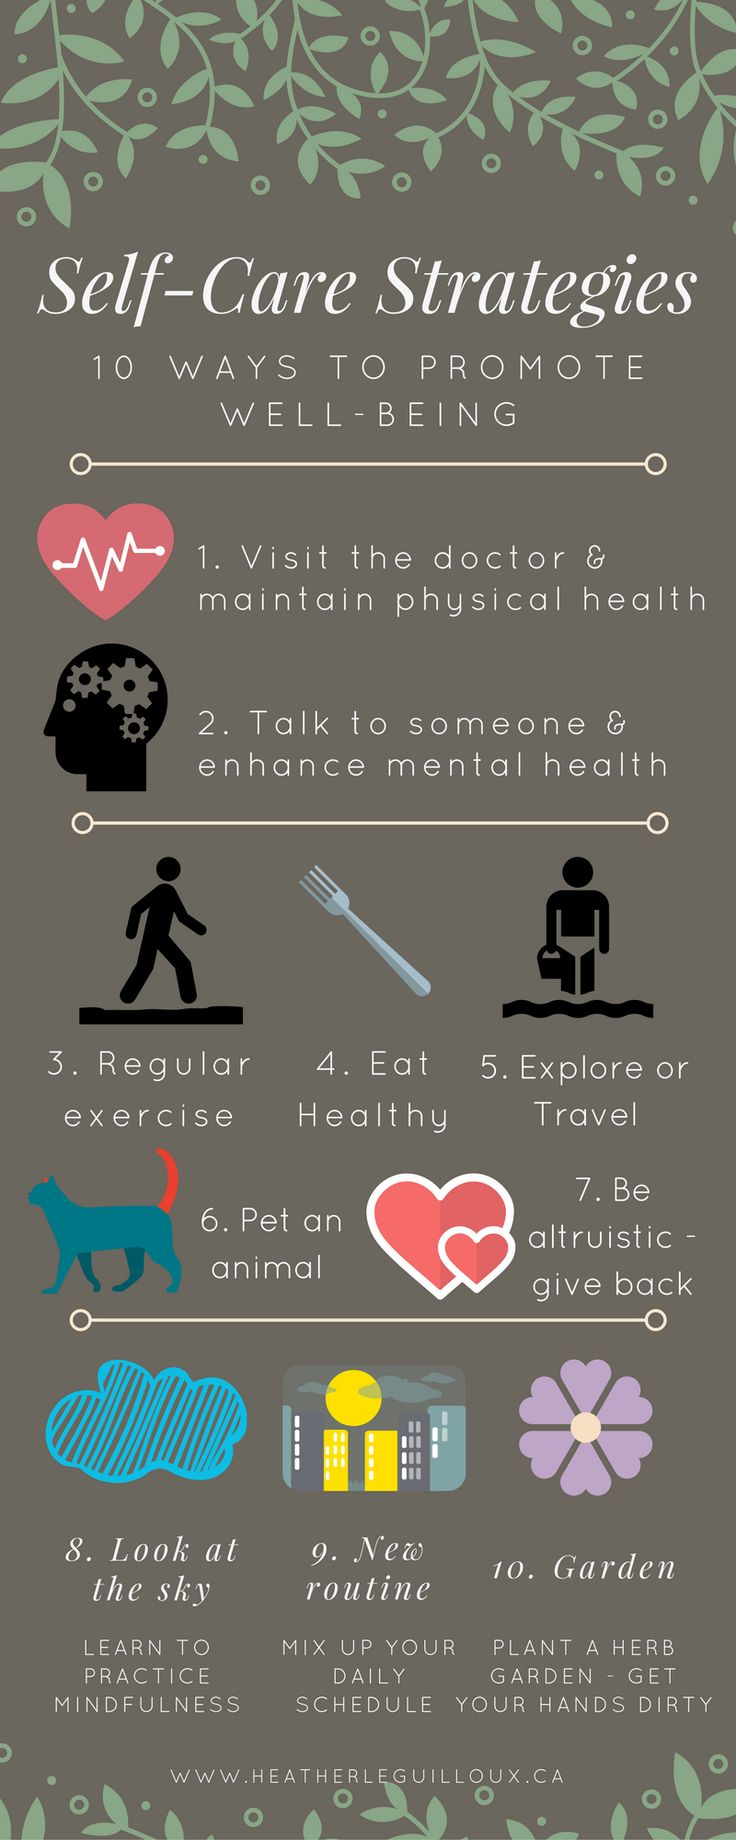 Self-care strategies Infographic & blog post @hleguilloux - self-care | wellness | mental health | well-being | blog | therapy